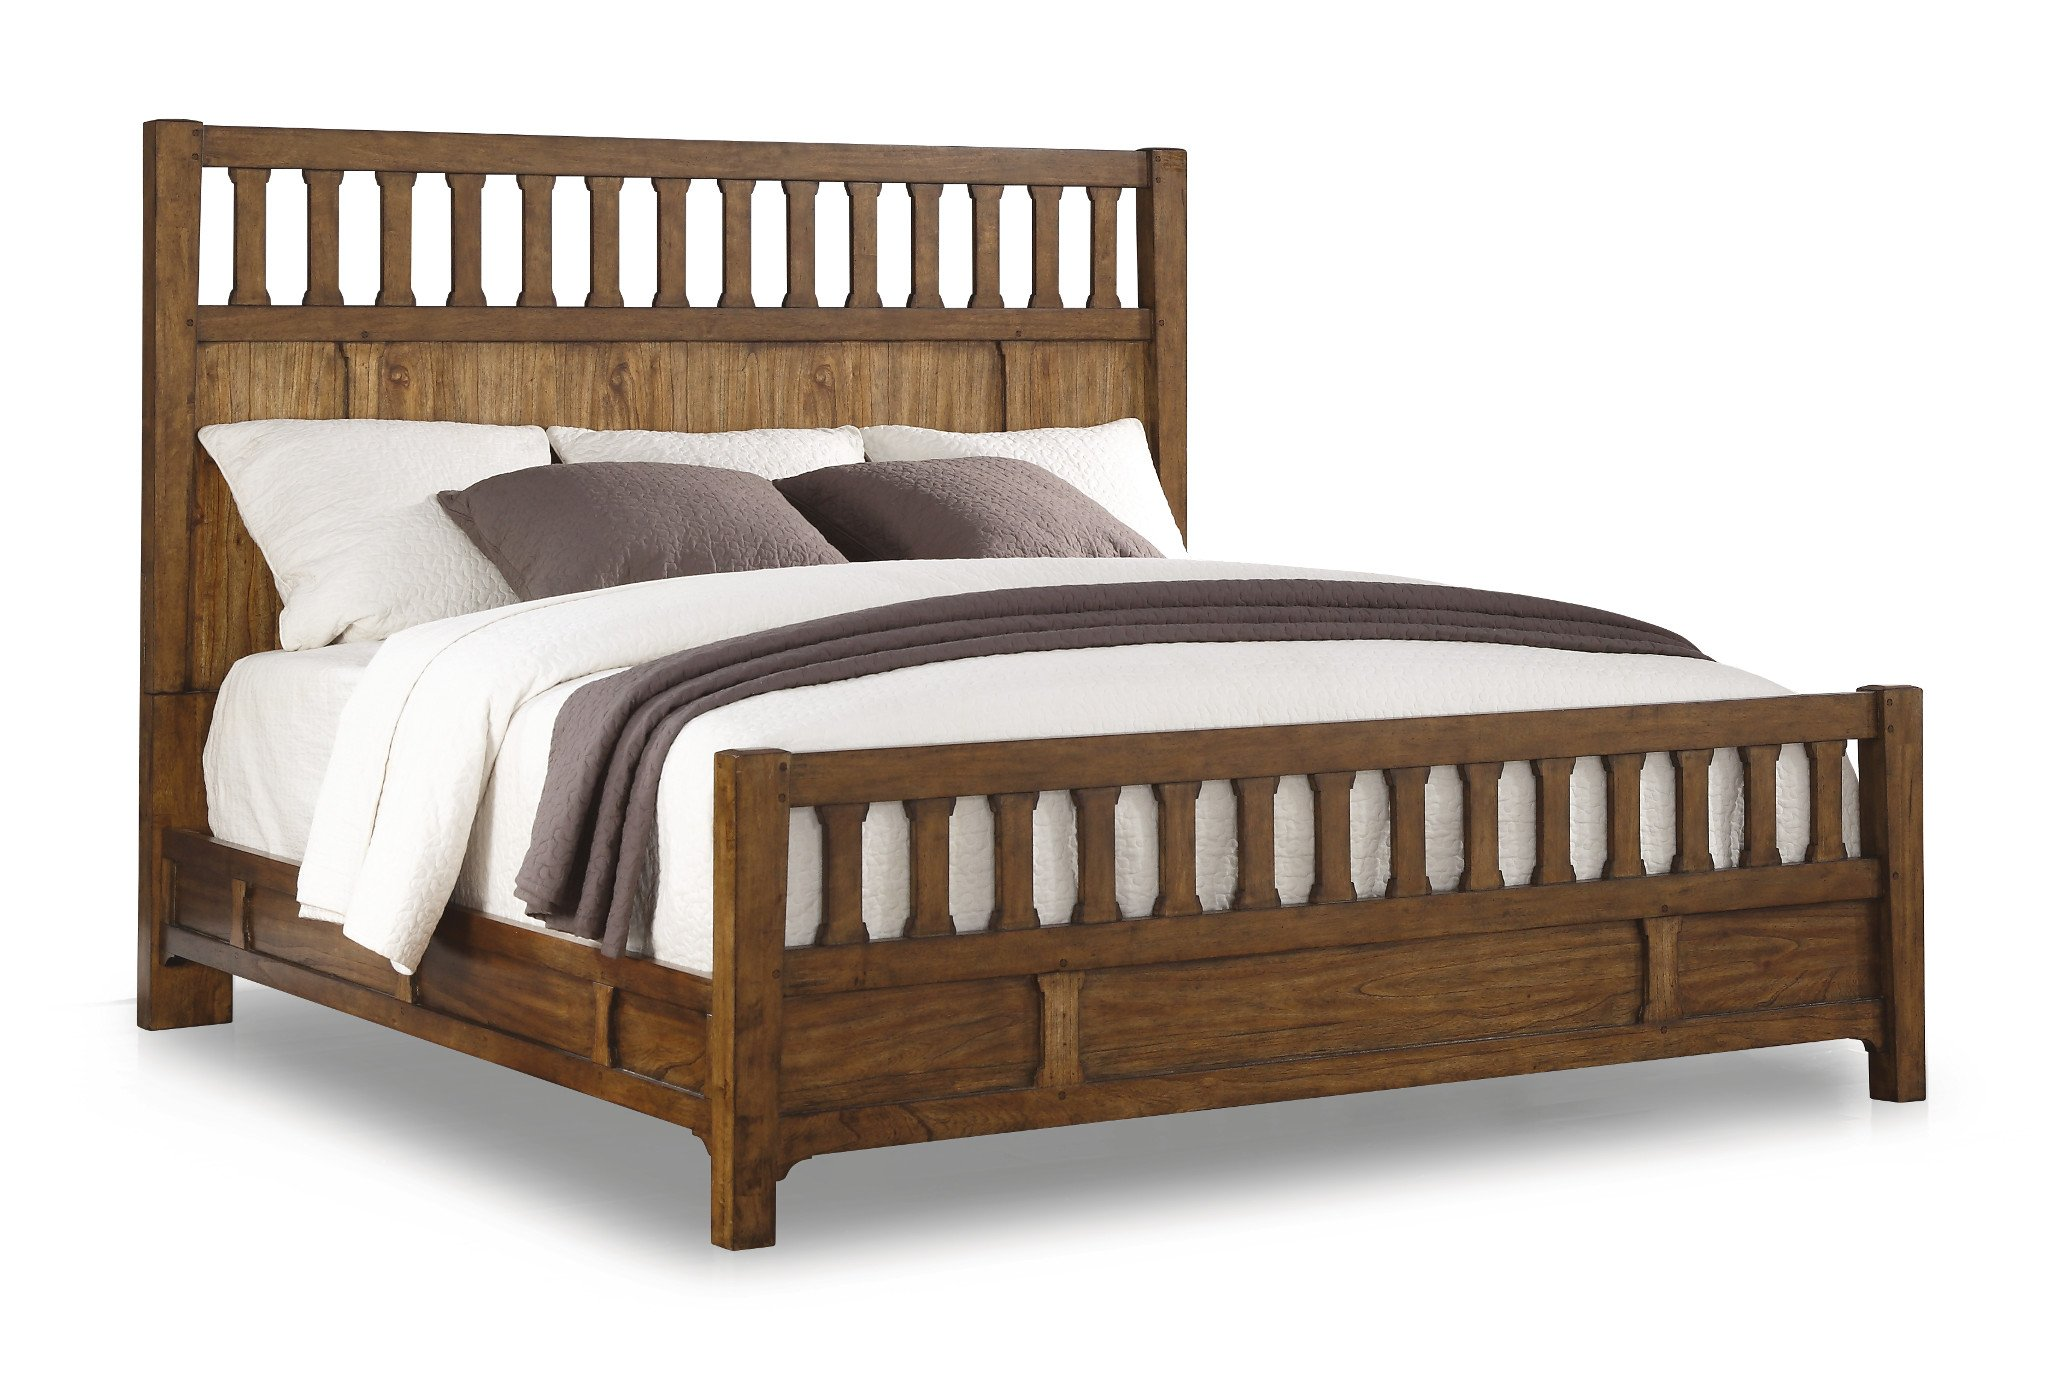 Sonora Wynwood Bedroom Collection Adirondack Furniture